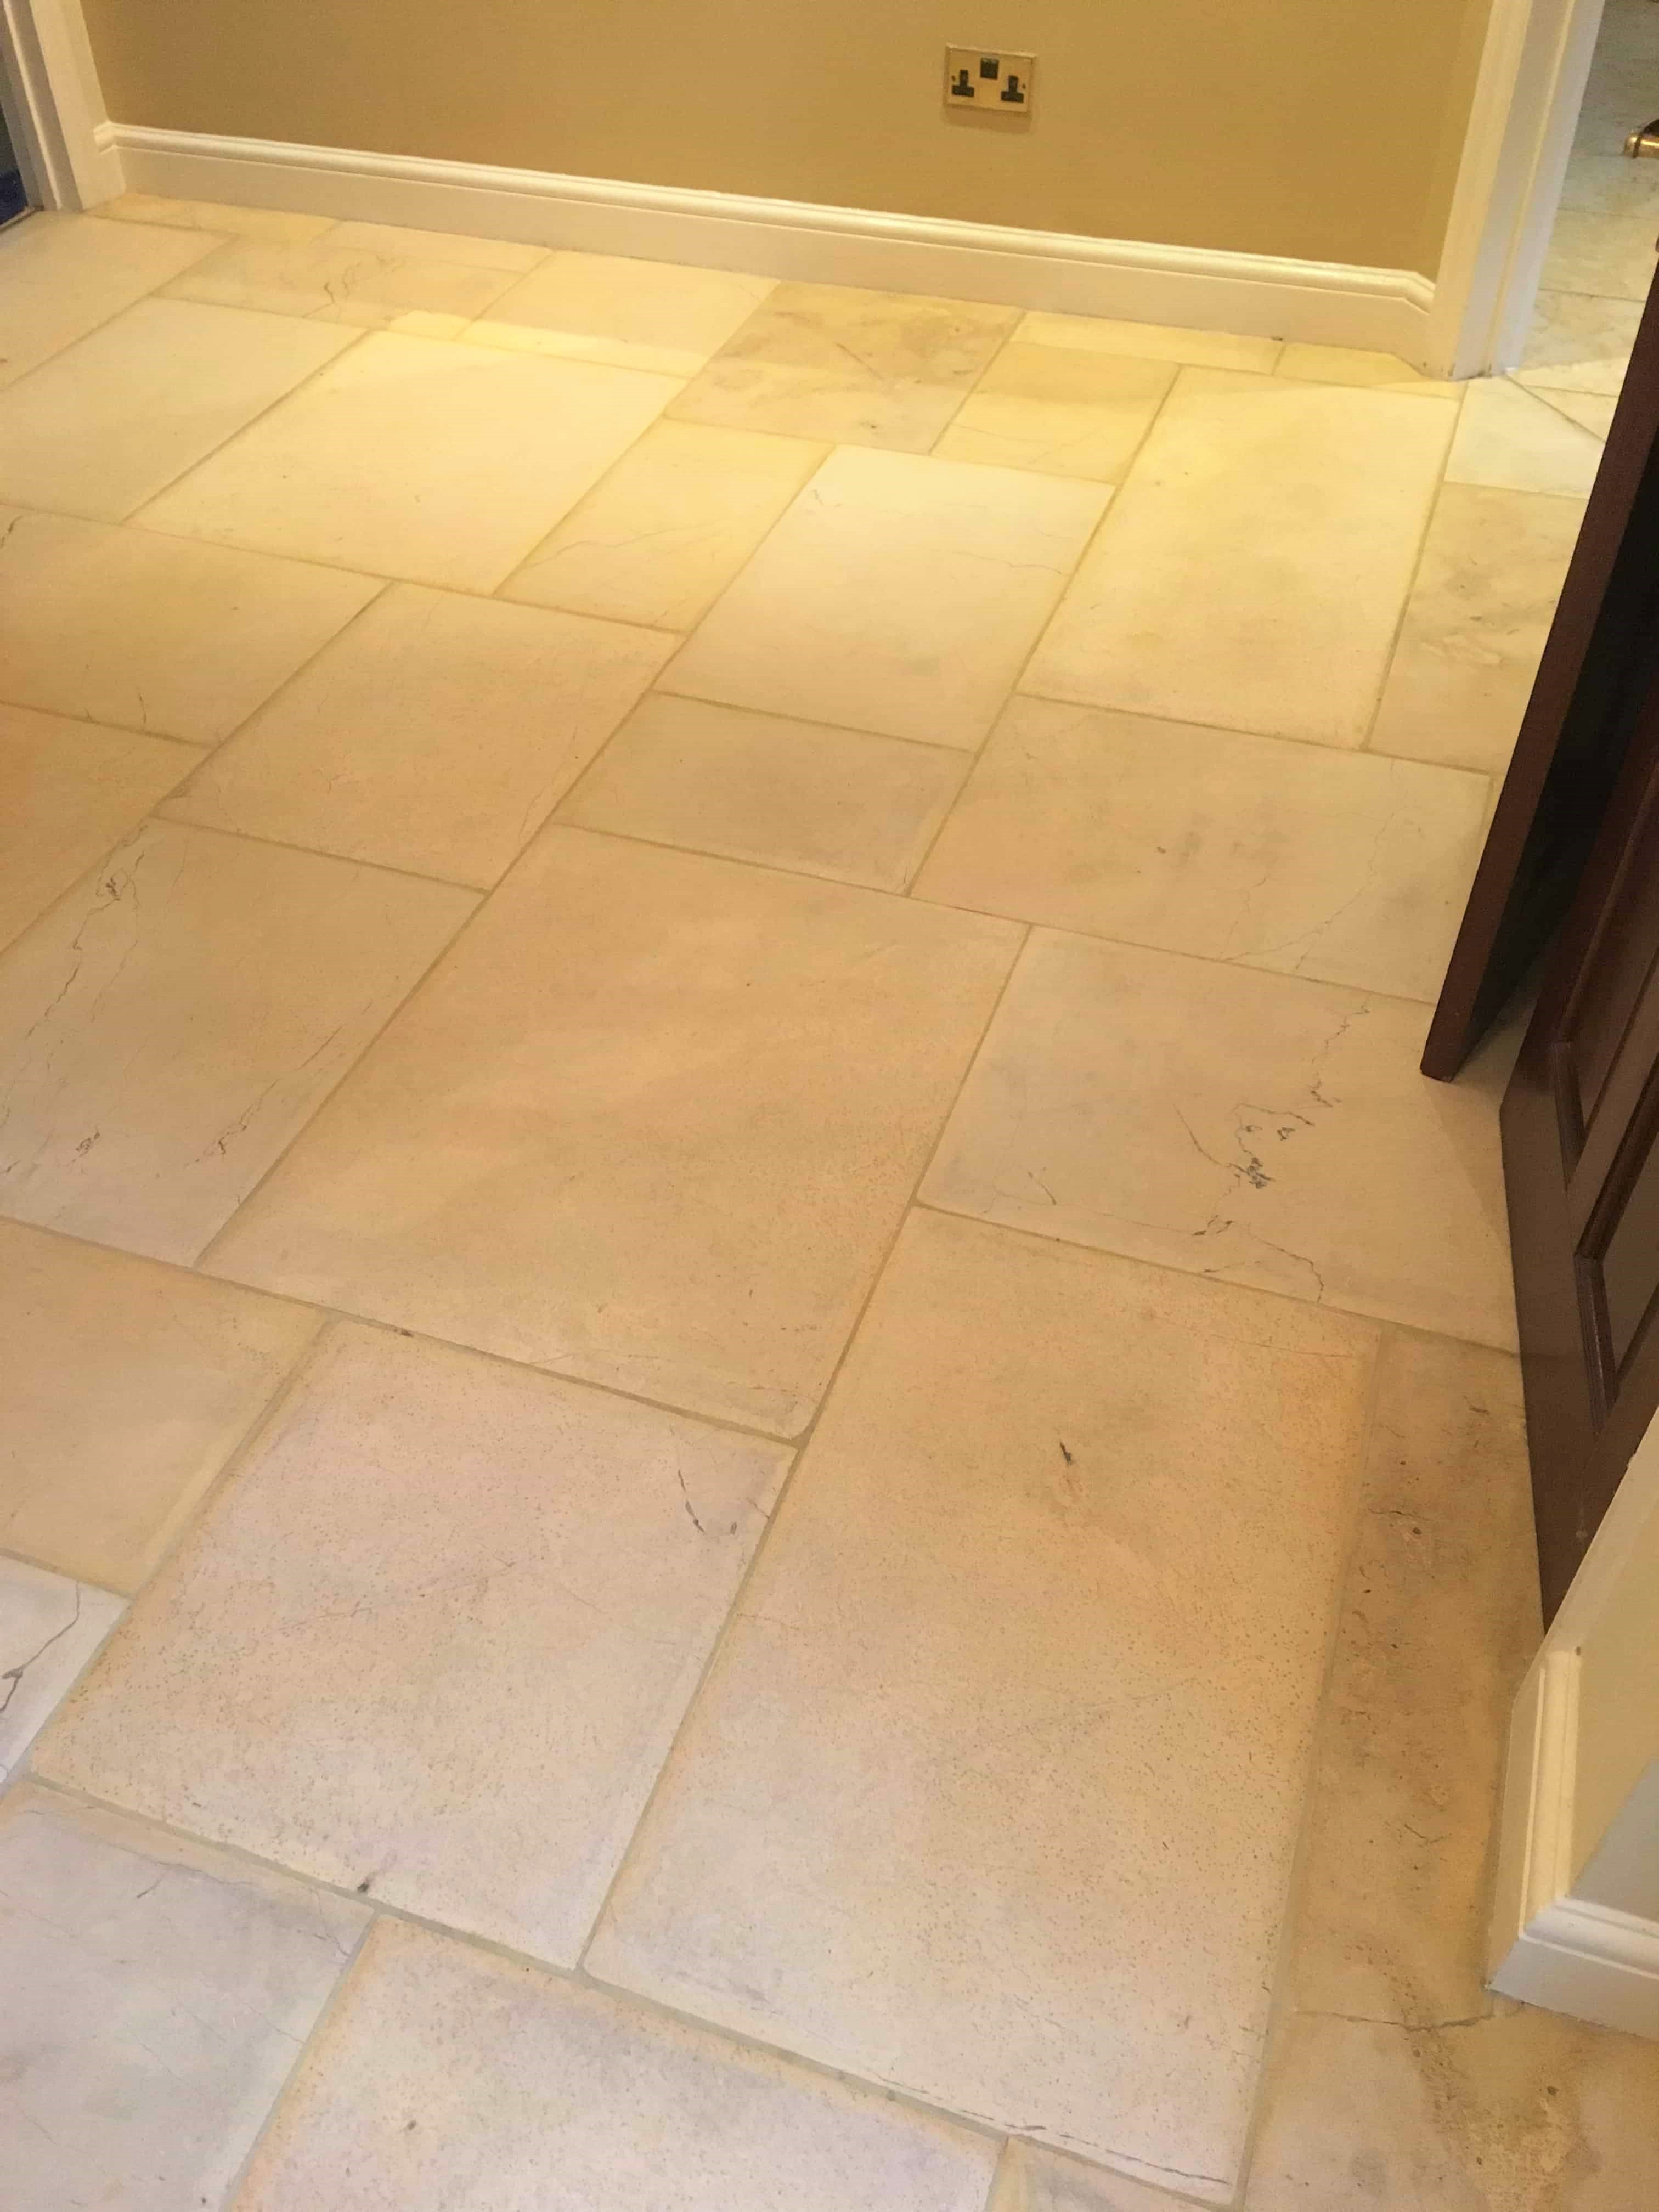 Limestone Tiled Hallway After Cleaning Twickenham